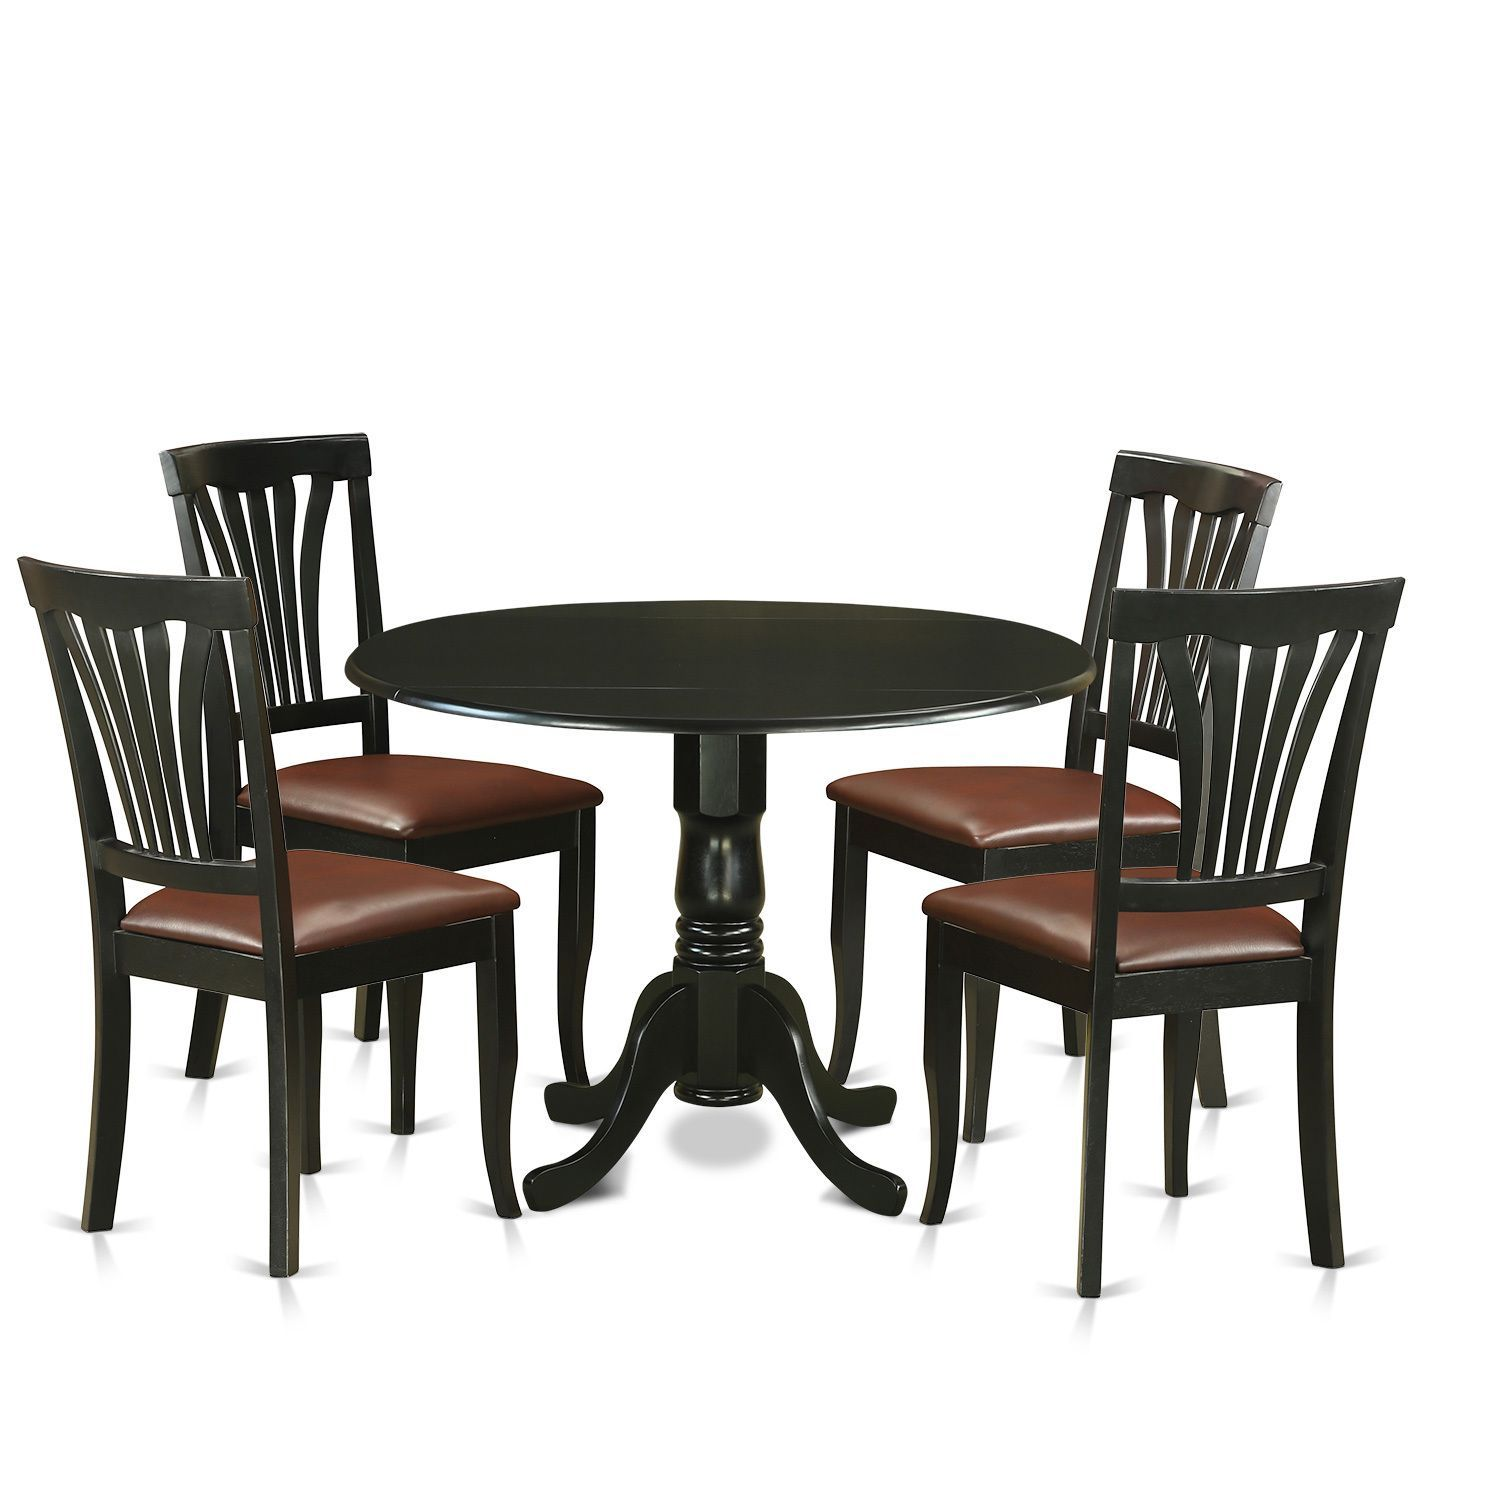 5 piece dublin kitchen table set with dining table and 4 kitchen chairs 5 piece dublin kitchen table set with dining table and 4 kitchen      rh   pinterest com